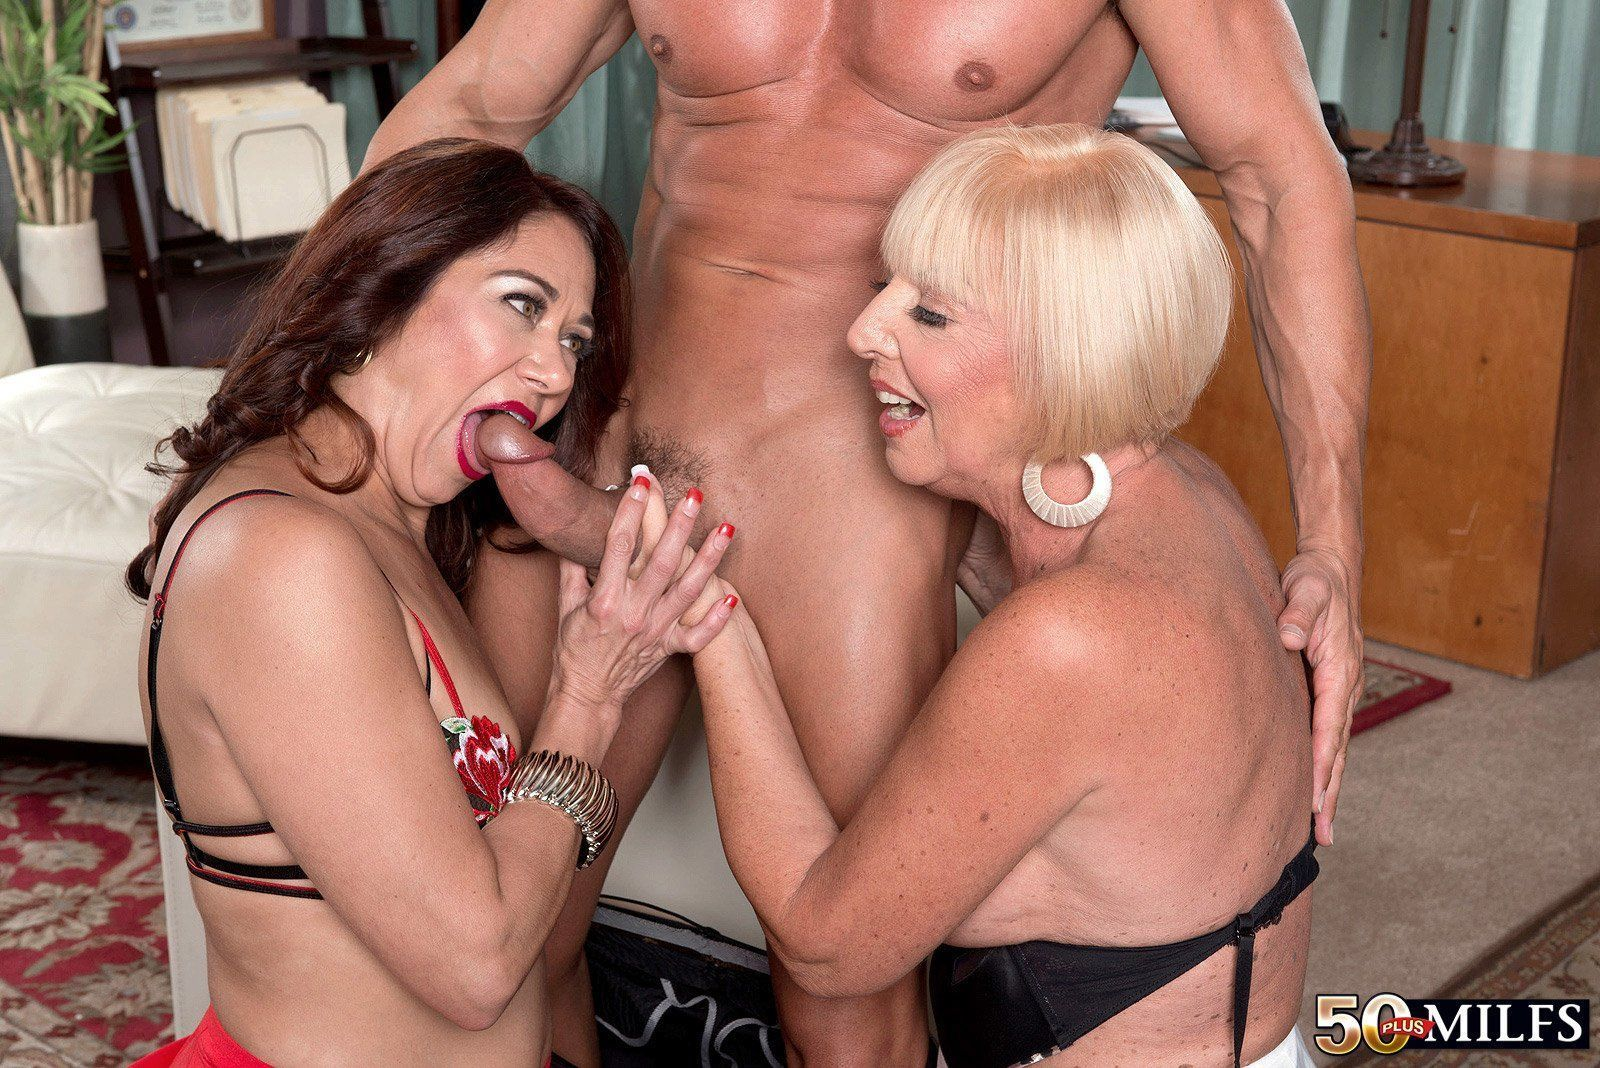 Apologise, two with milfs privat threesome words... super, excellent